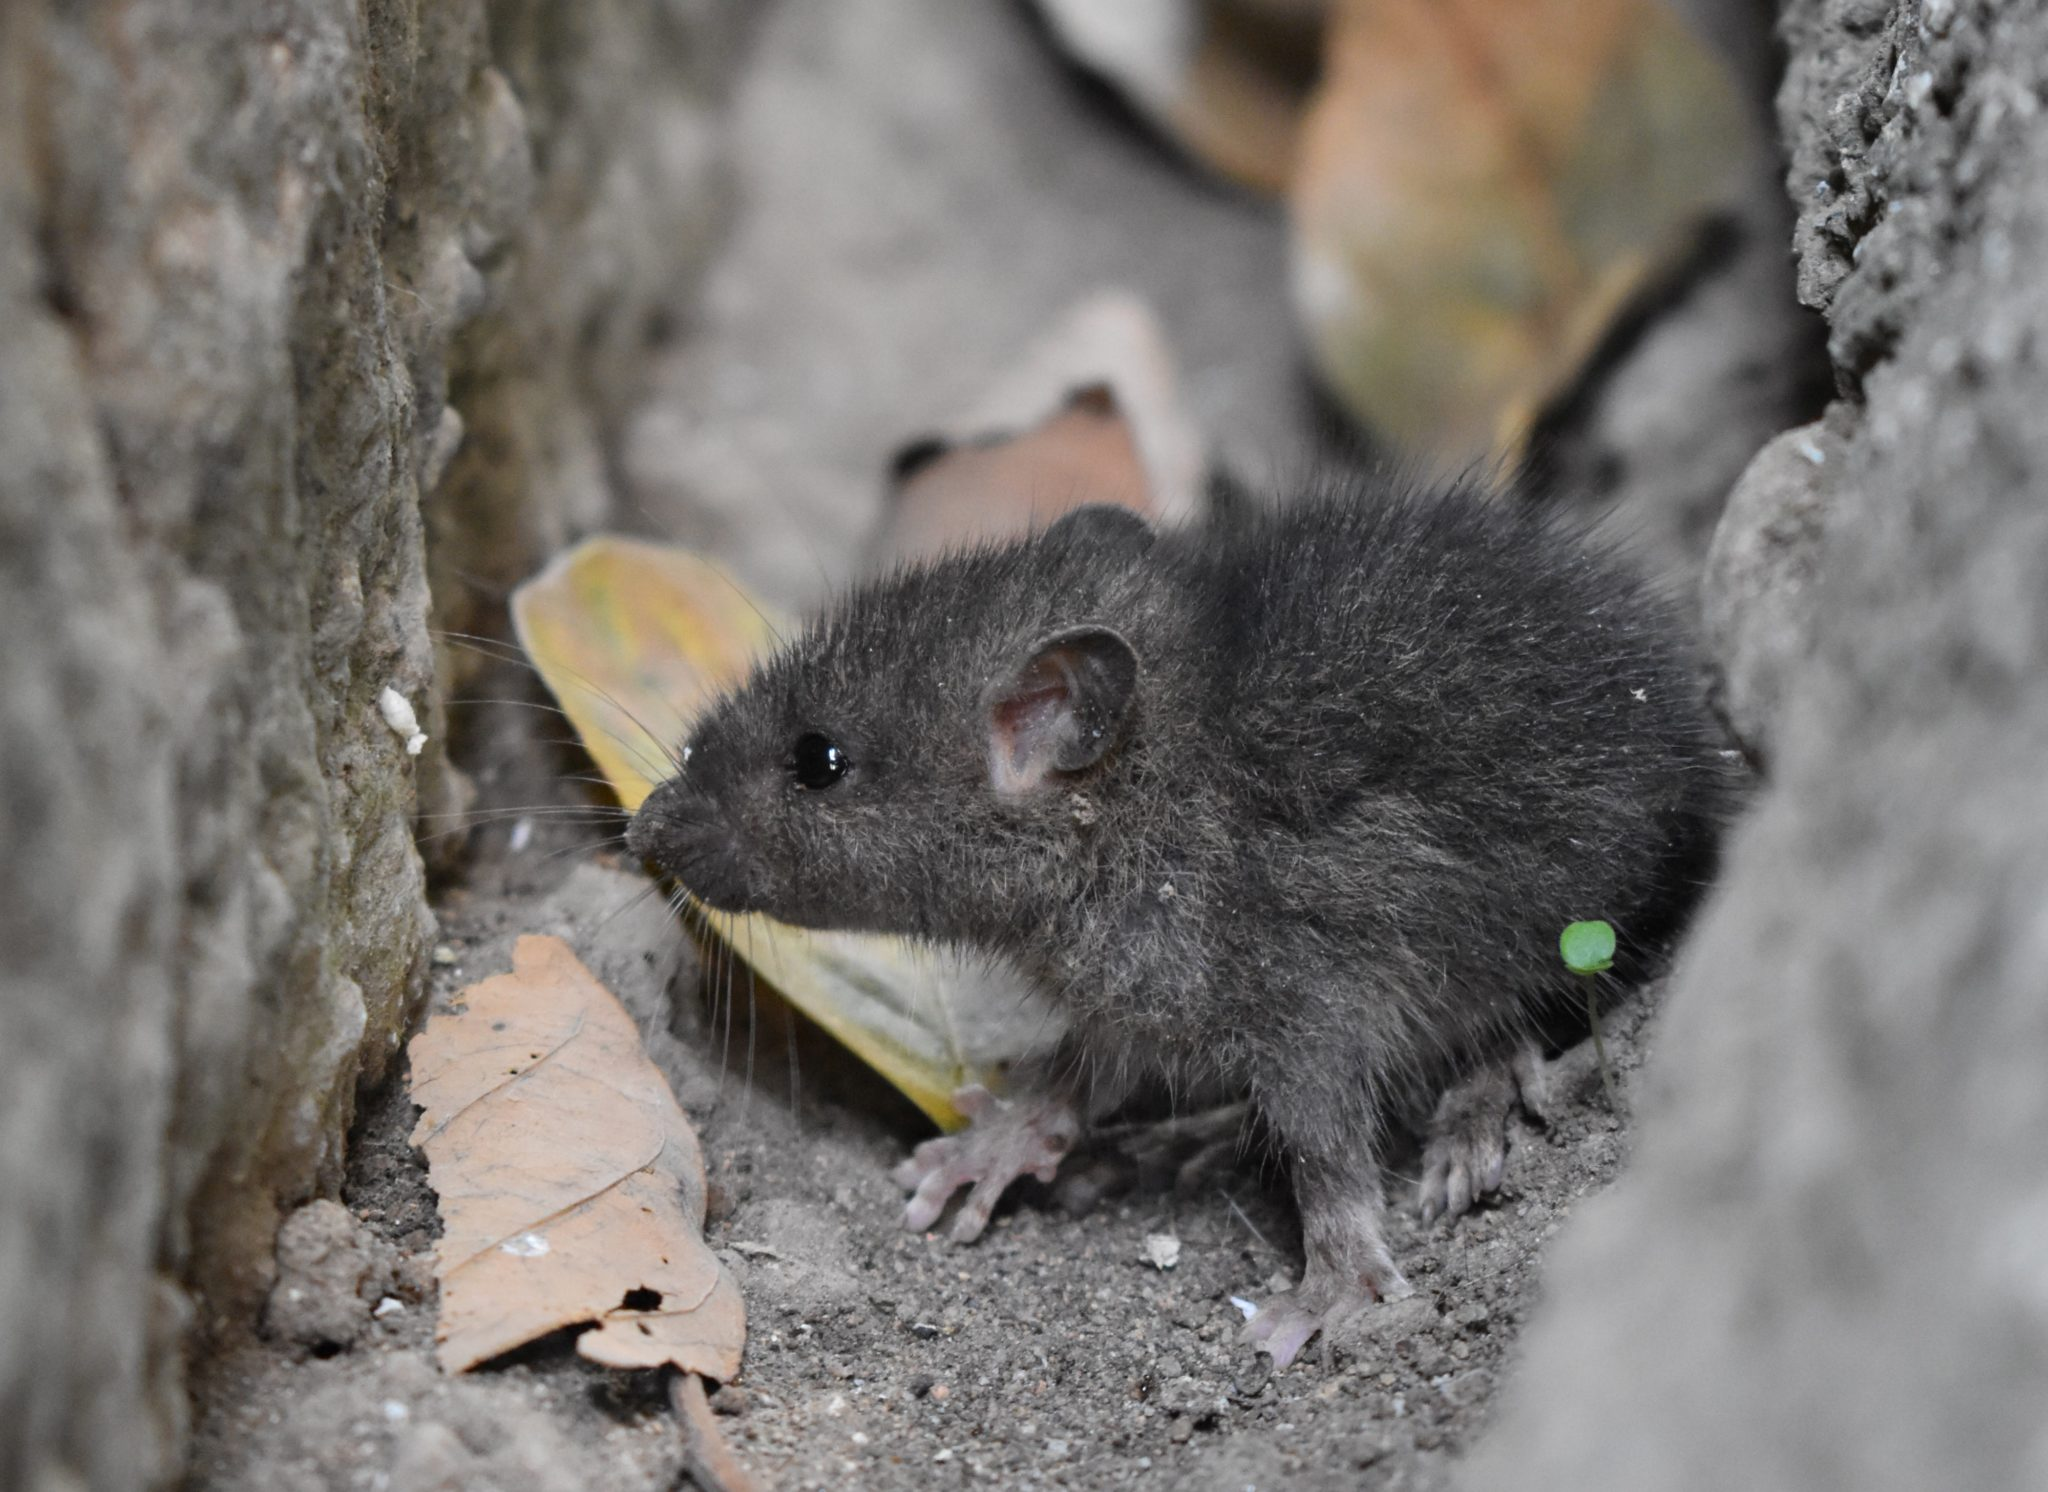 Gray rat in a small space.